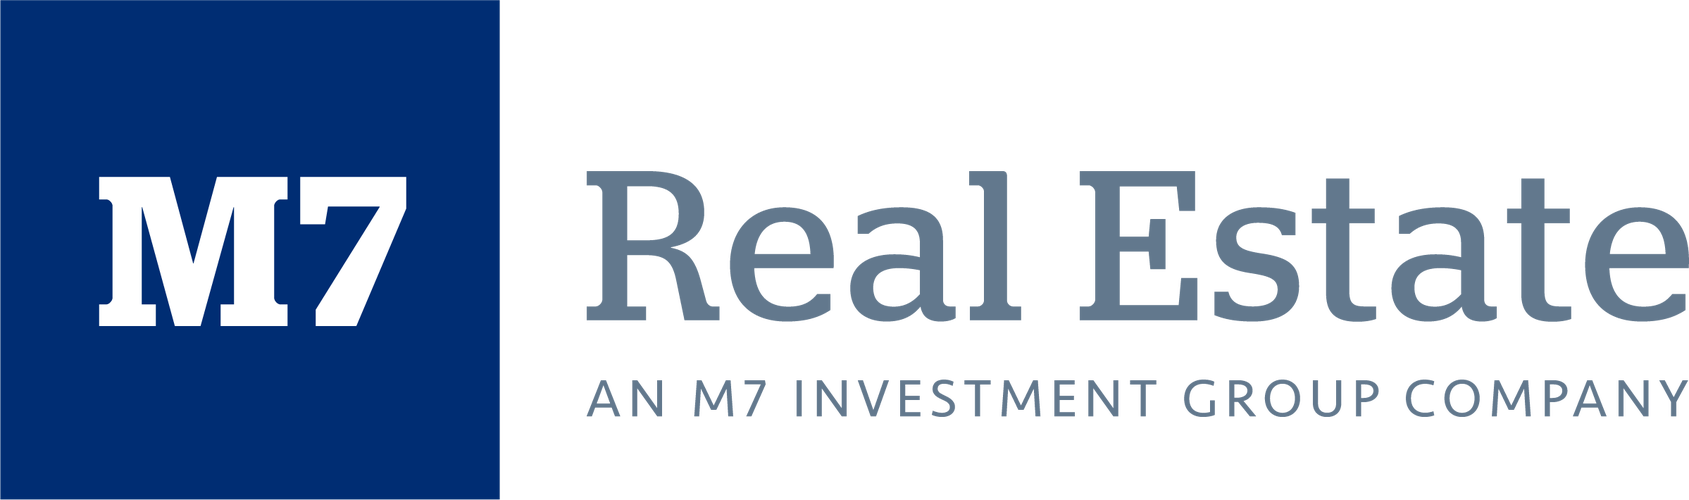 M7 Real Estate